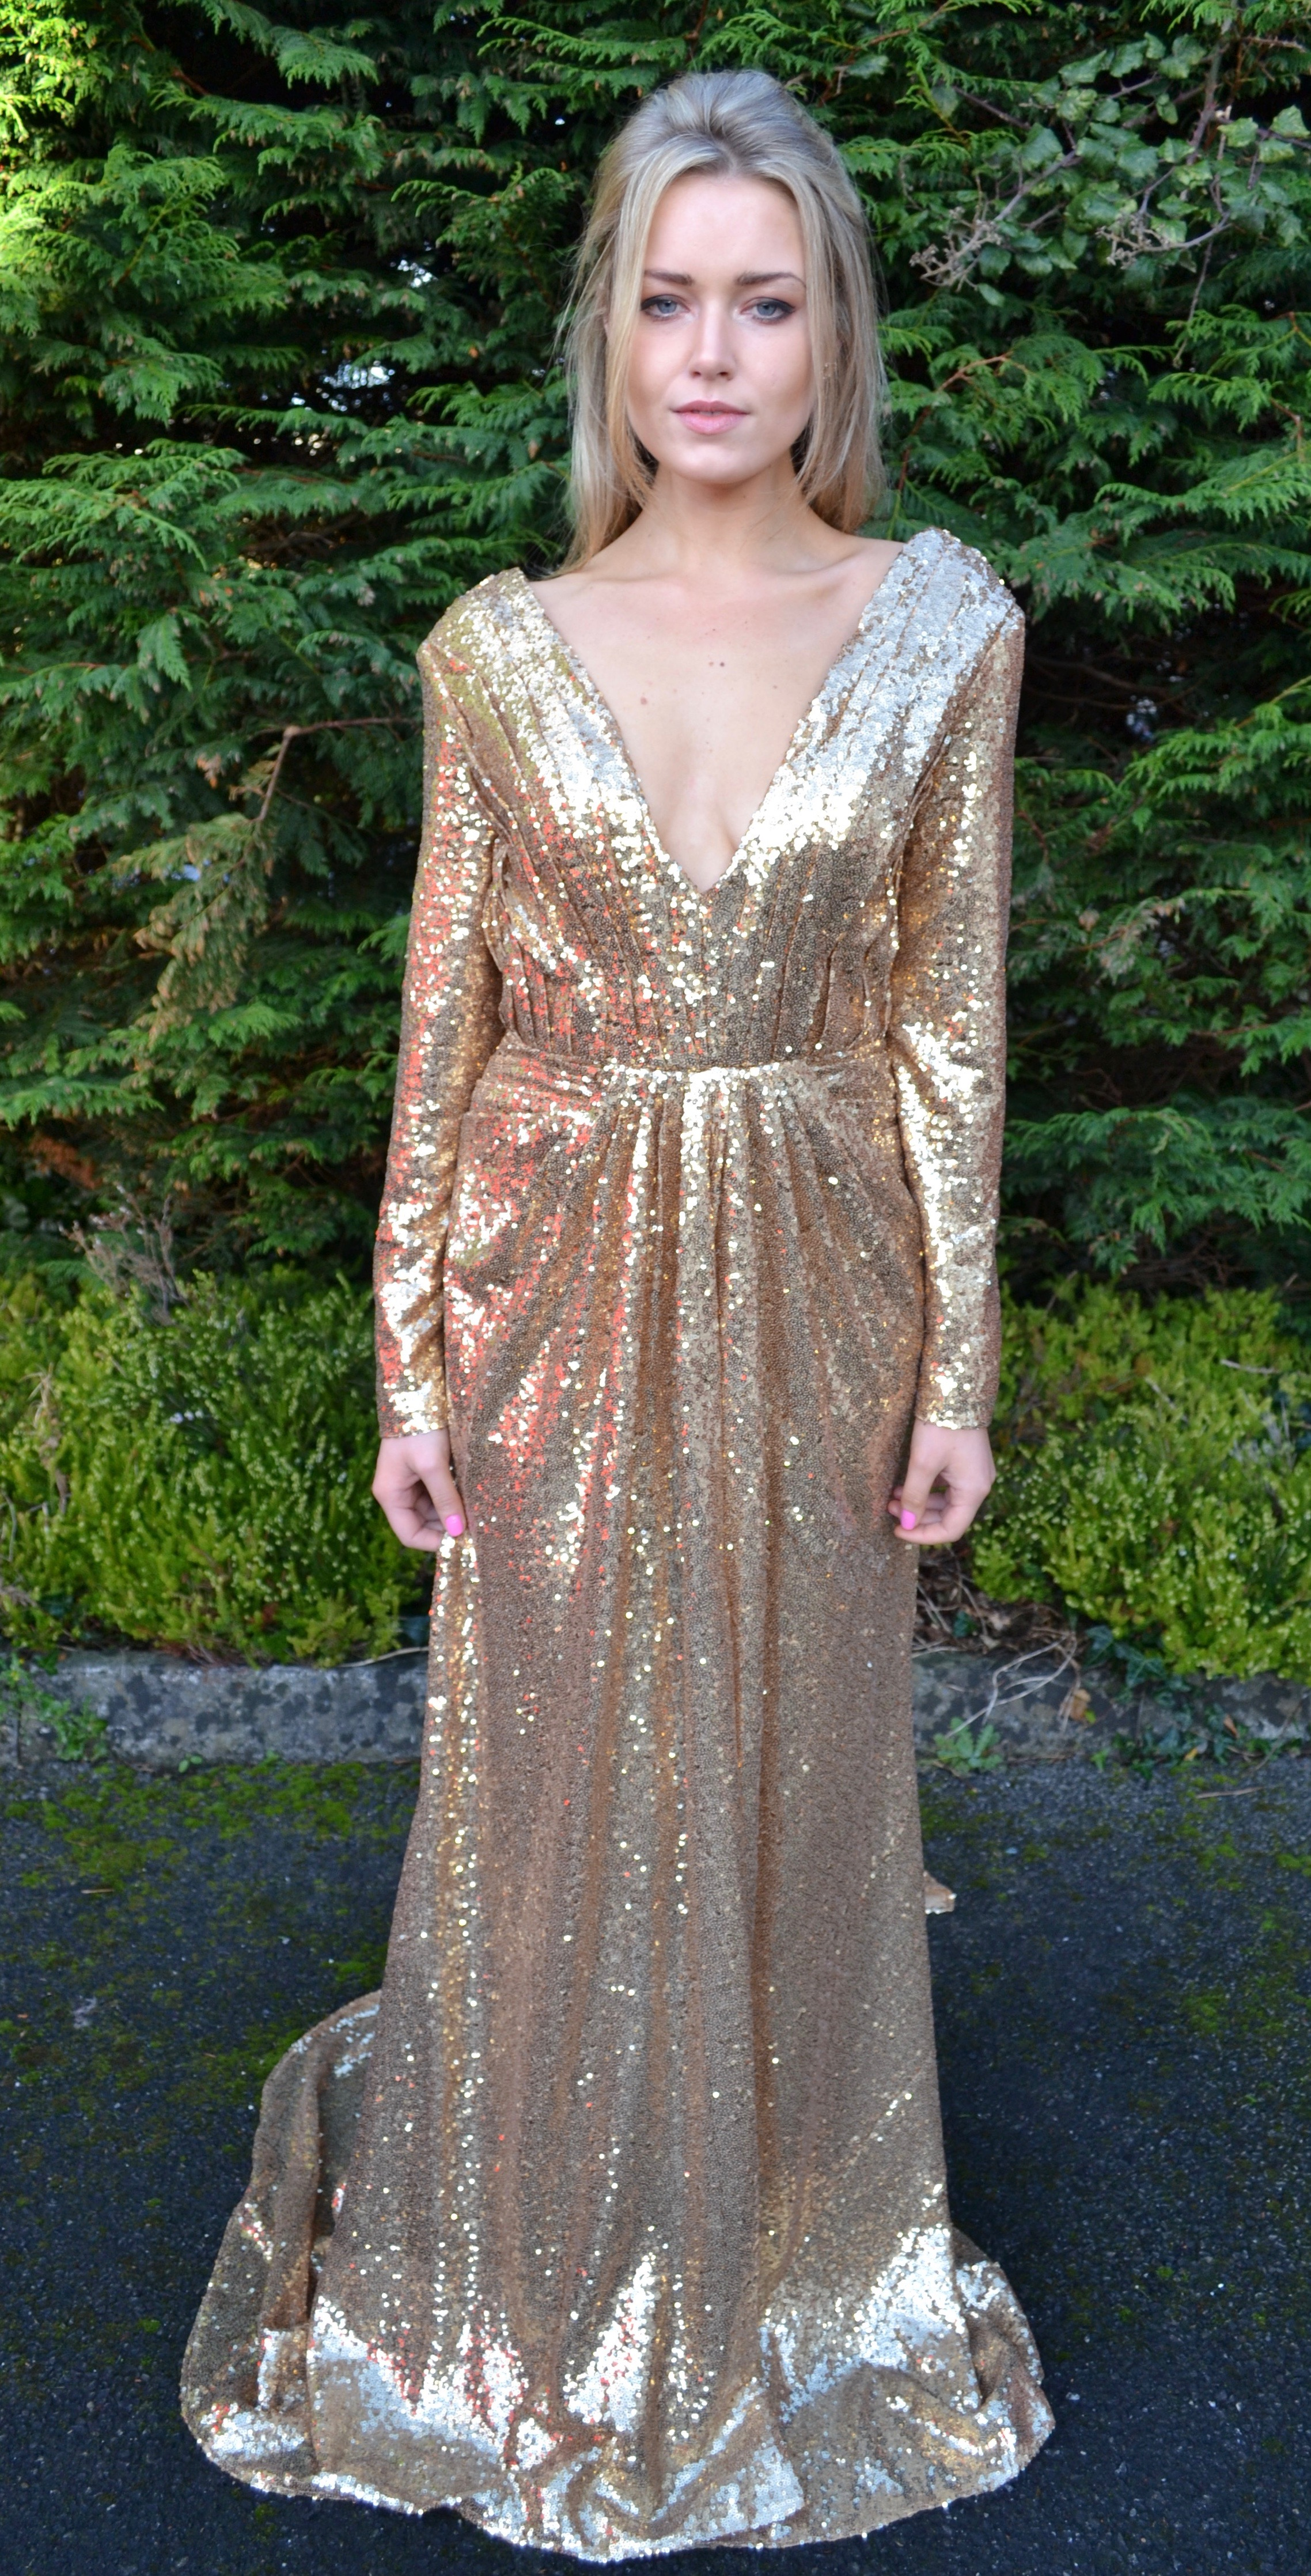 helena dress sequin wedding theodorajames.jpg